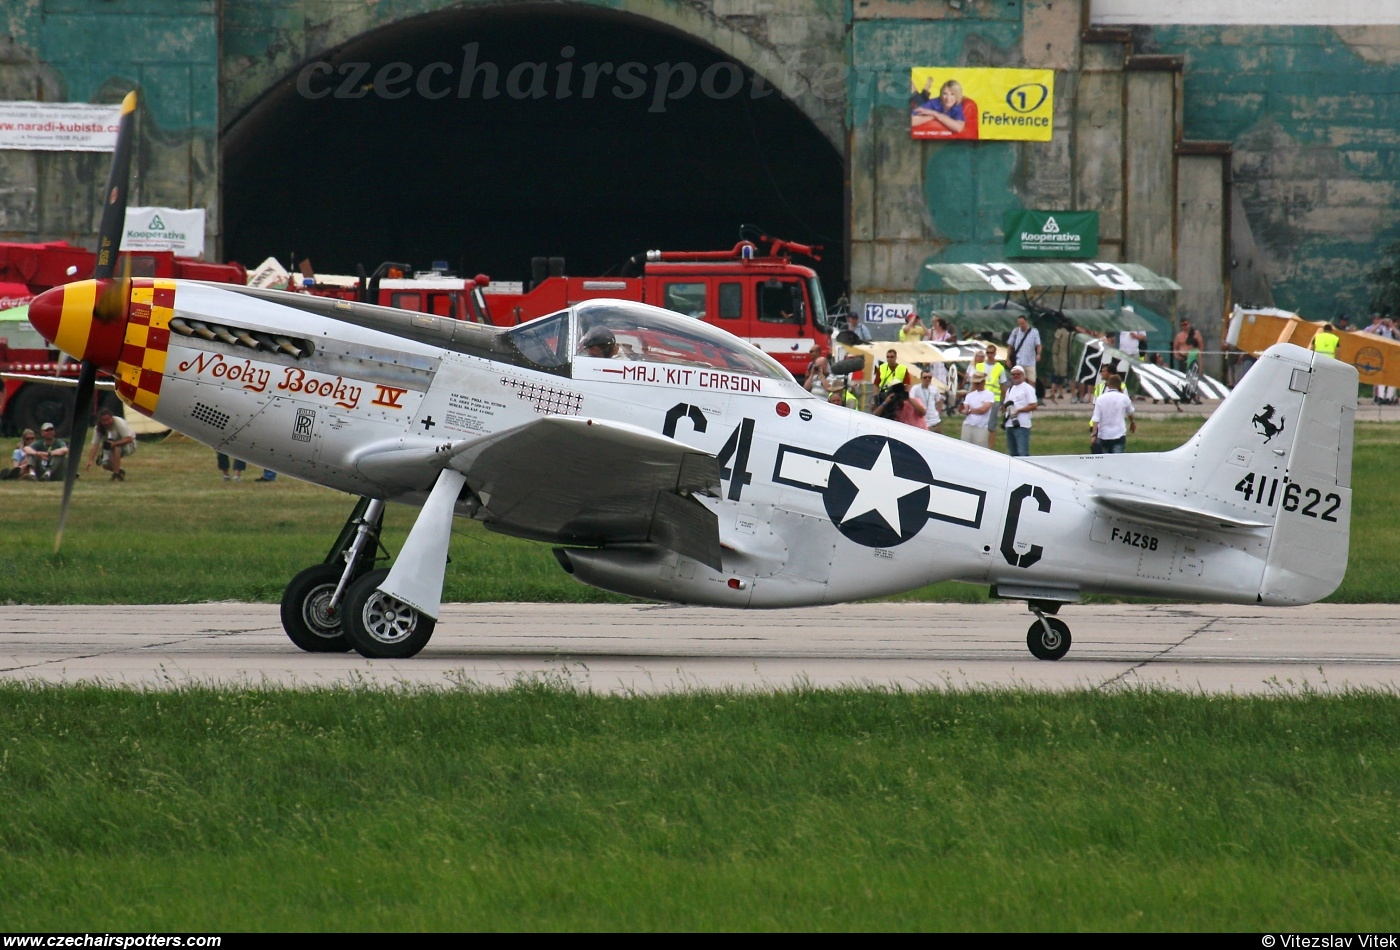 private – North American P-51D Mustang F-AZSB